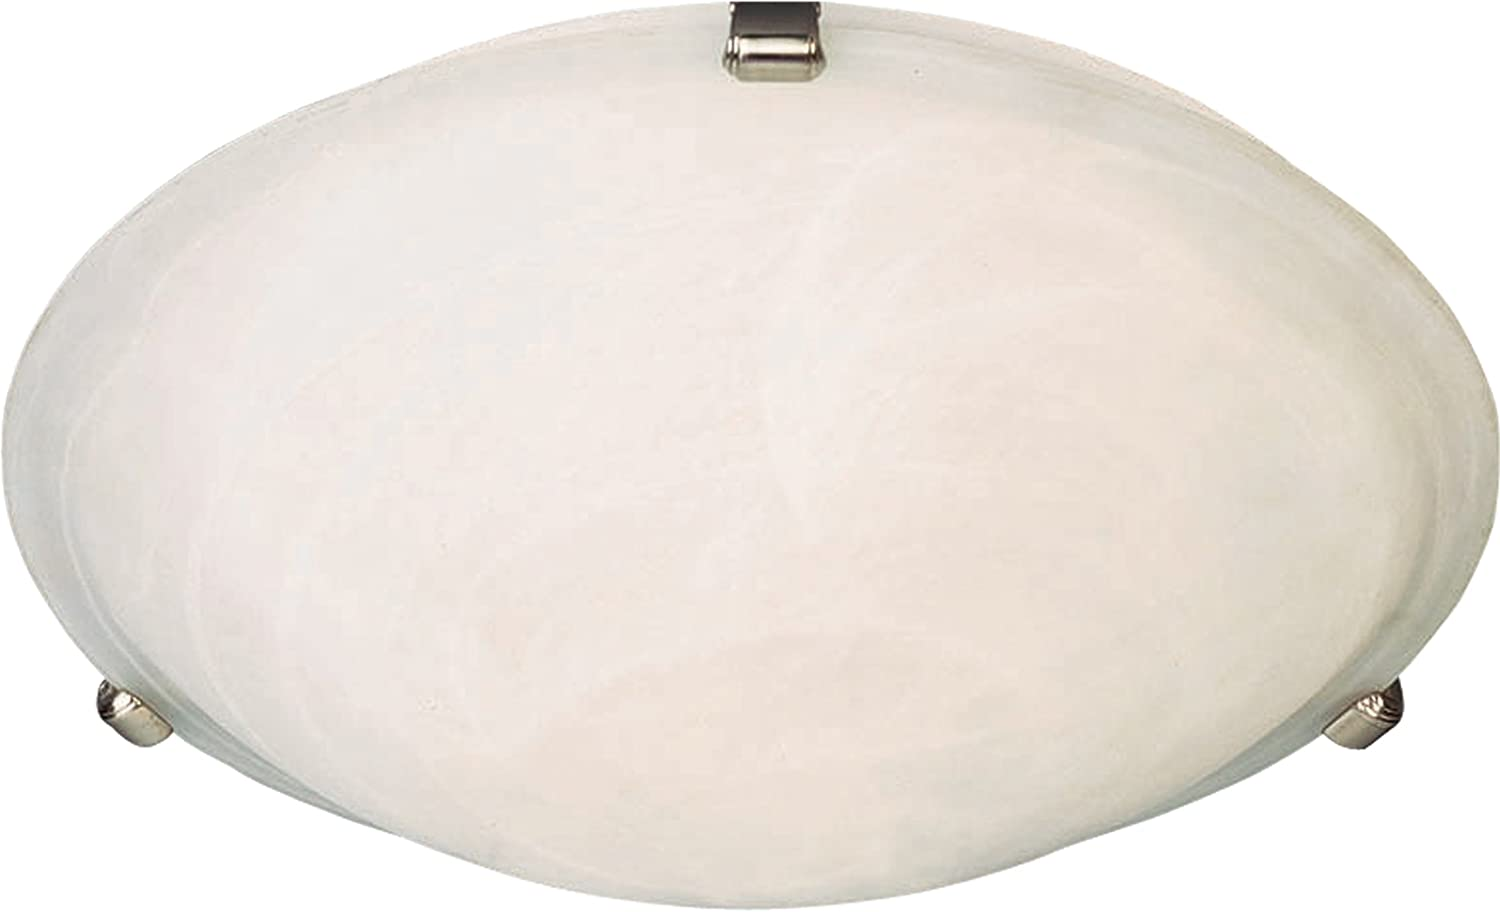 2700K Color Temp Satin Nickel Finish 1355 Rated Lumens Maxim 82681MRSN Malaga EE 3-Light Flush Mount 18W Max. Glass Shade Material Marble Glass GU24 Fluorescent Fluorescent Bulb Wet Safety Rating